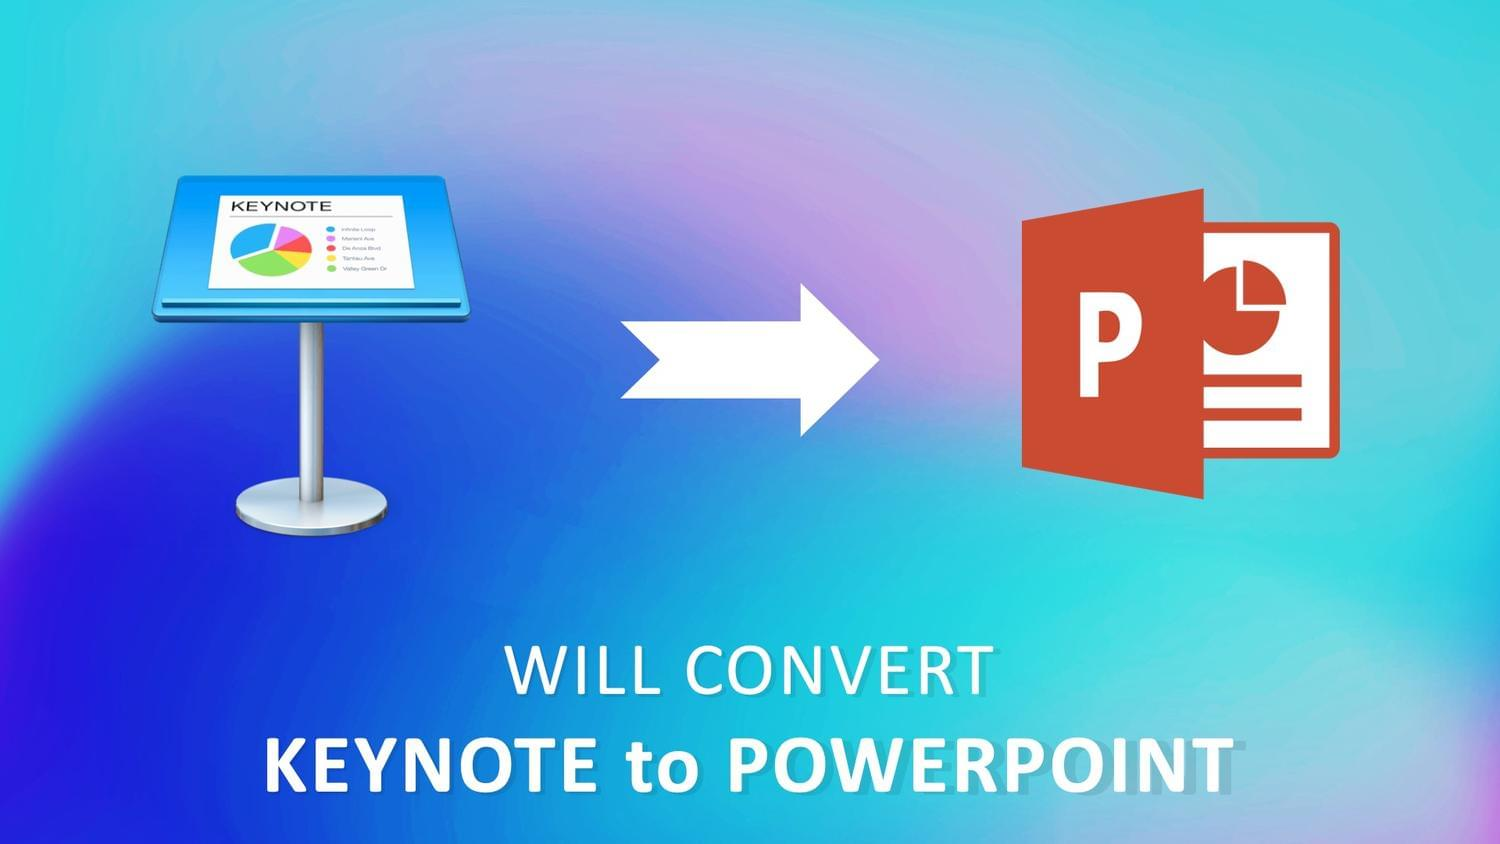 Convert Keynote to PowerPoint by arvaone - 115103